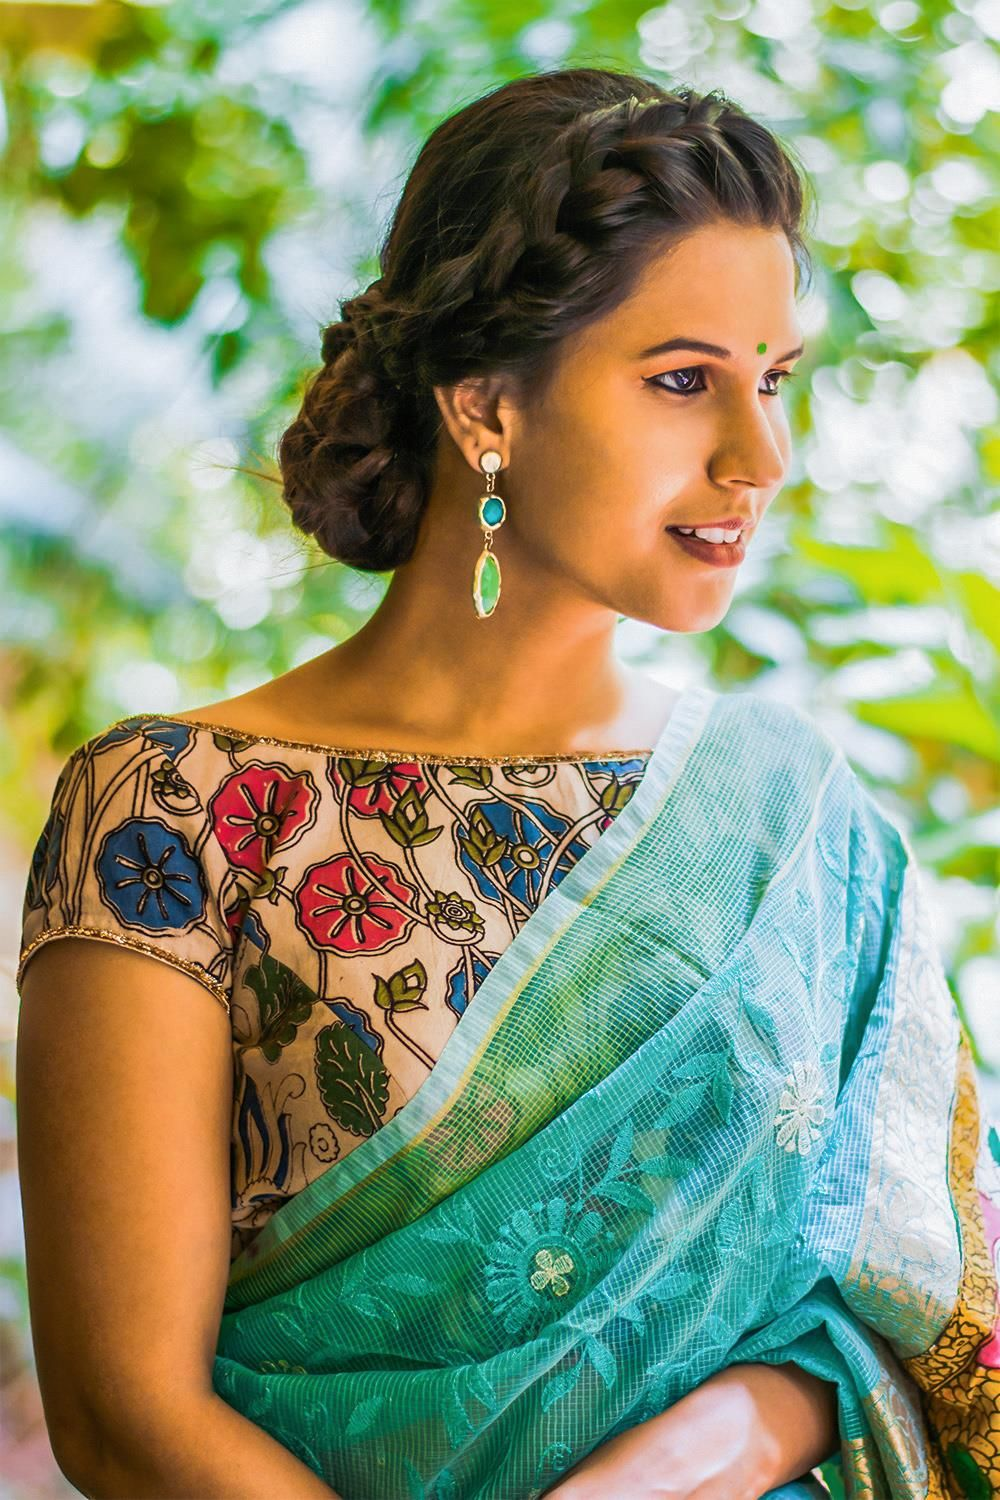 Saree Blouse Patterns And Designs Images Latest Indian Saree Blouse Designs Patterns Back Front Neck Blouses Discover The Latest Best Selling Shop Women S Shirts High Quality Blouses,Baja Designs Squadron Sae